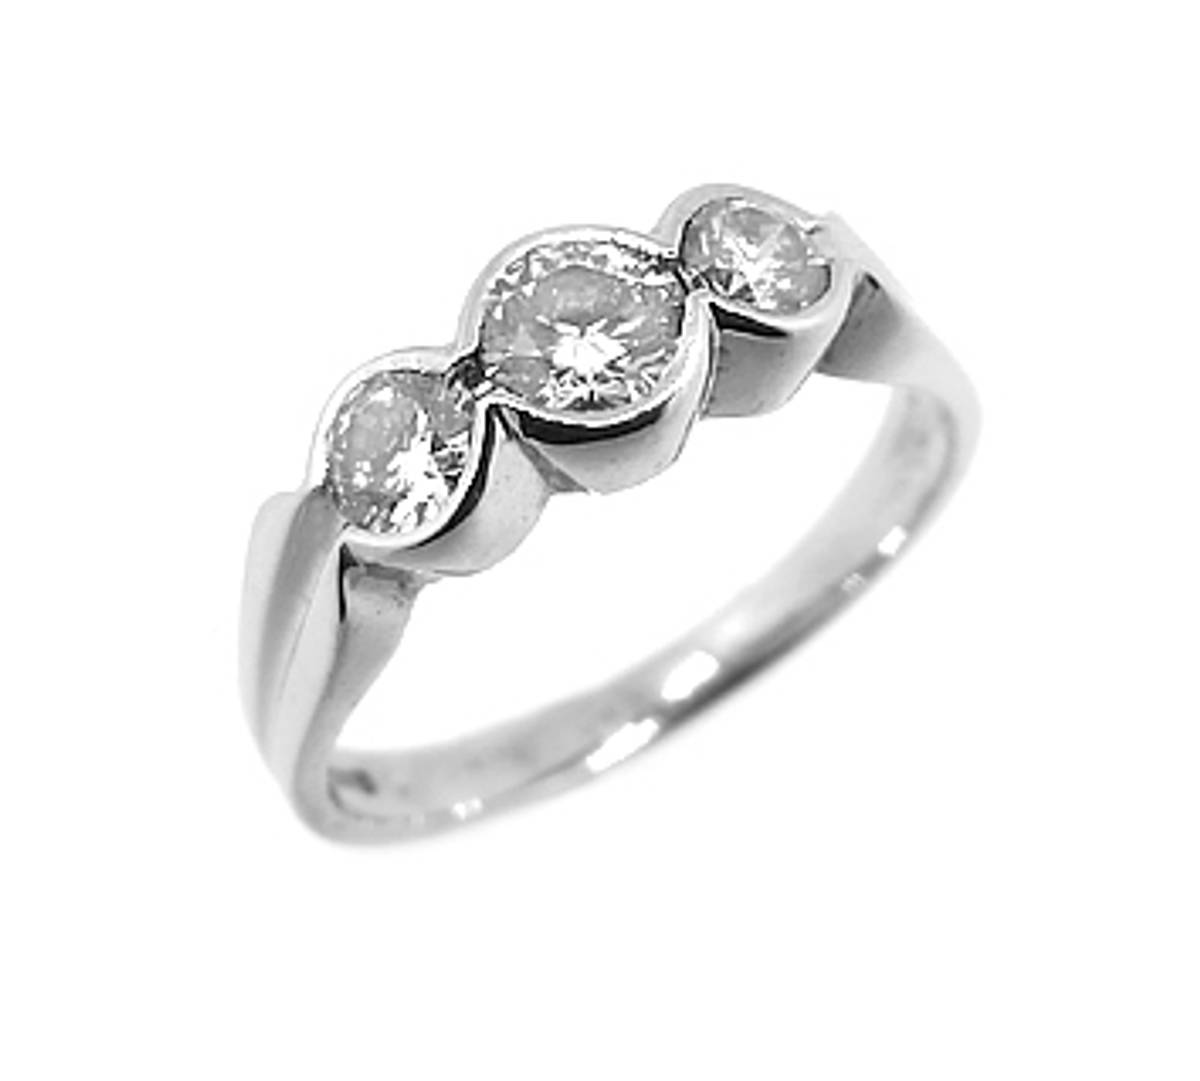 18k white gold 3st brilliant cut diamond rubover set ring diamond total weight 0.62cts Made in Ireland SIZE (US / IRE)Choose an option 4 / H4.5 / I5 / J5.5 / K6 / L6.5 / M7 / N7.5 / O8 / P8.5 / Q9 / R9.5 / S   SKU: DR77222